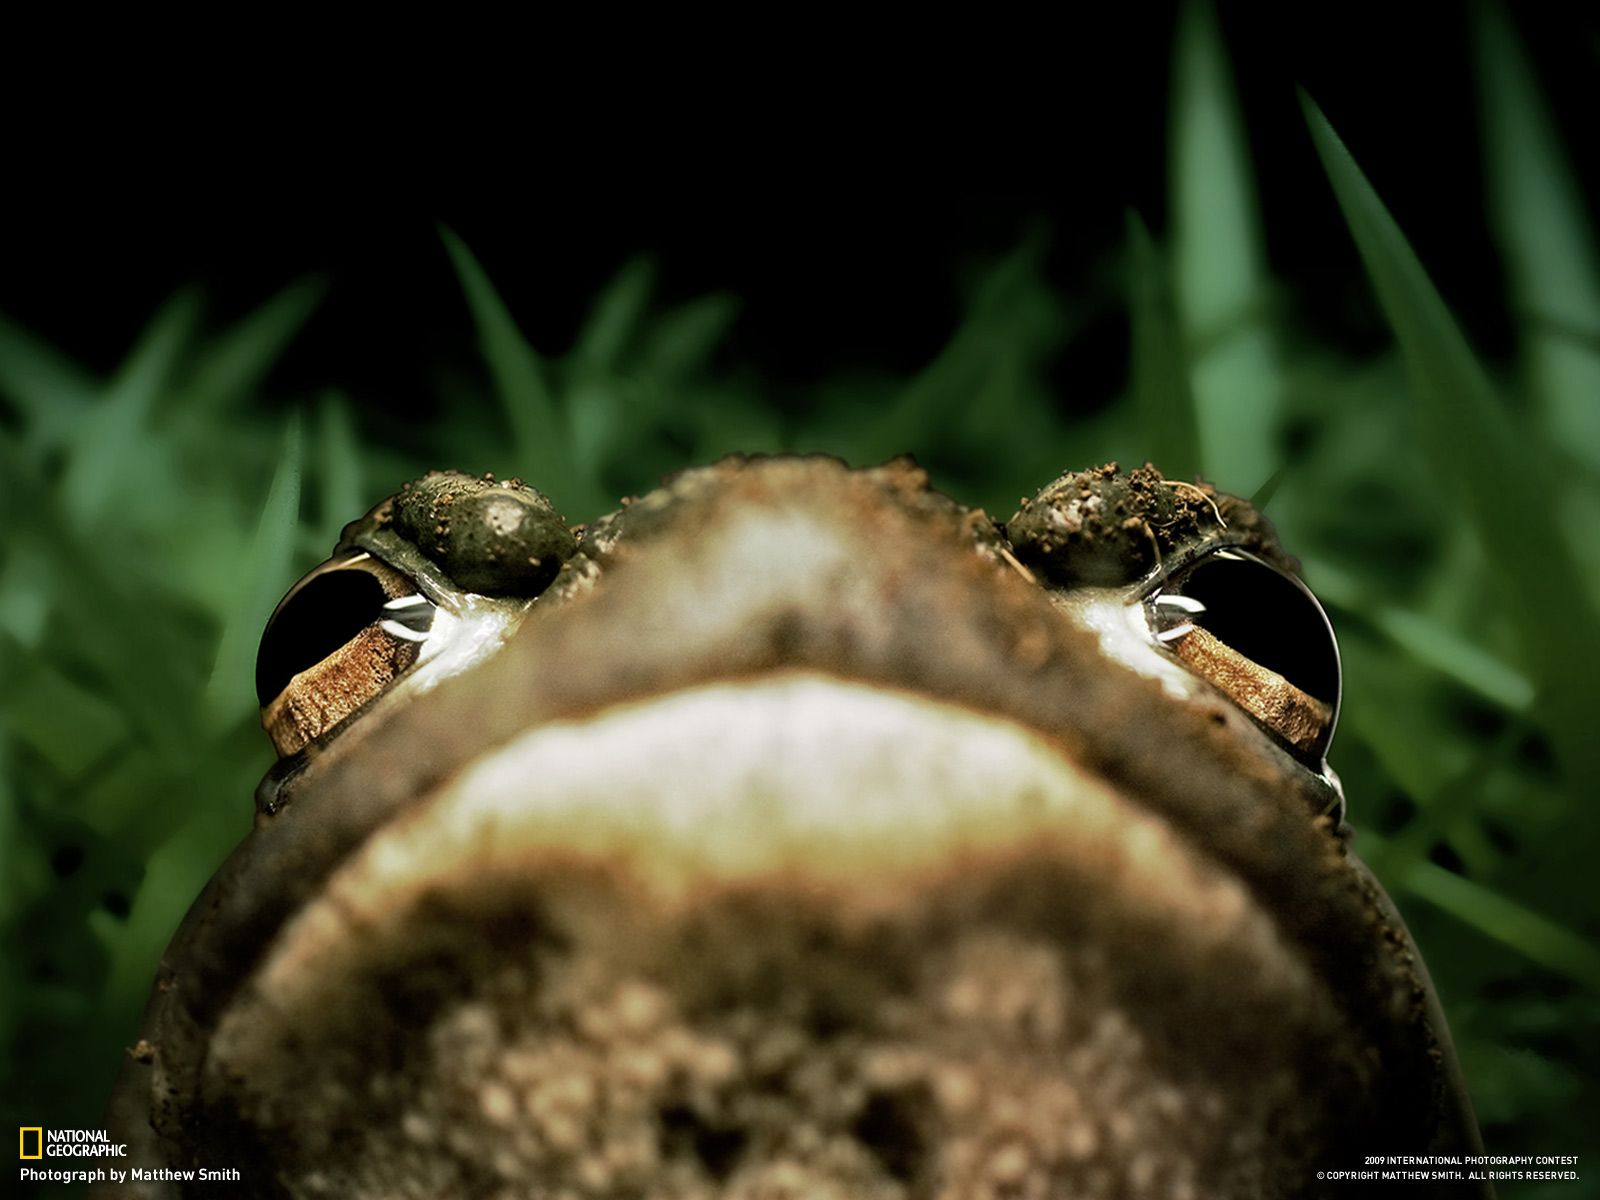 national geographic | National Geographic Wallpaper - Photograph by Matthew Smith